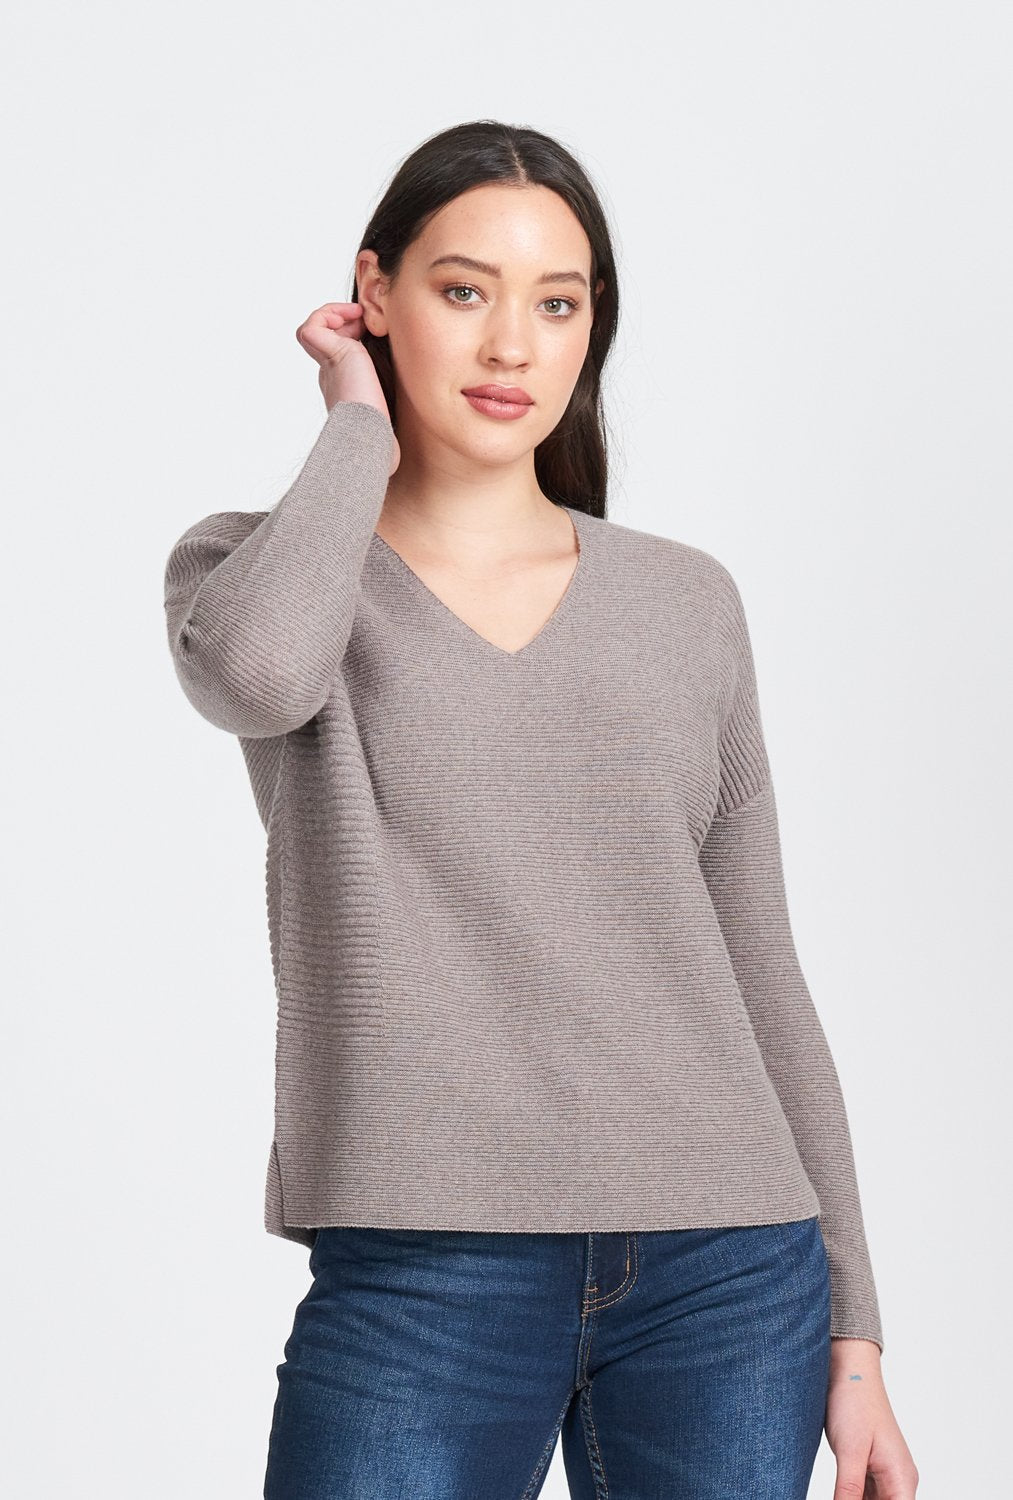 L/S V NECK RIPPLE JUMPER - Woolshed Gallery